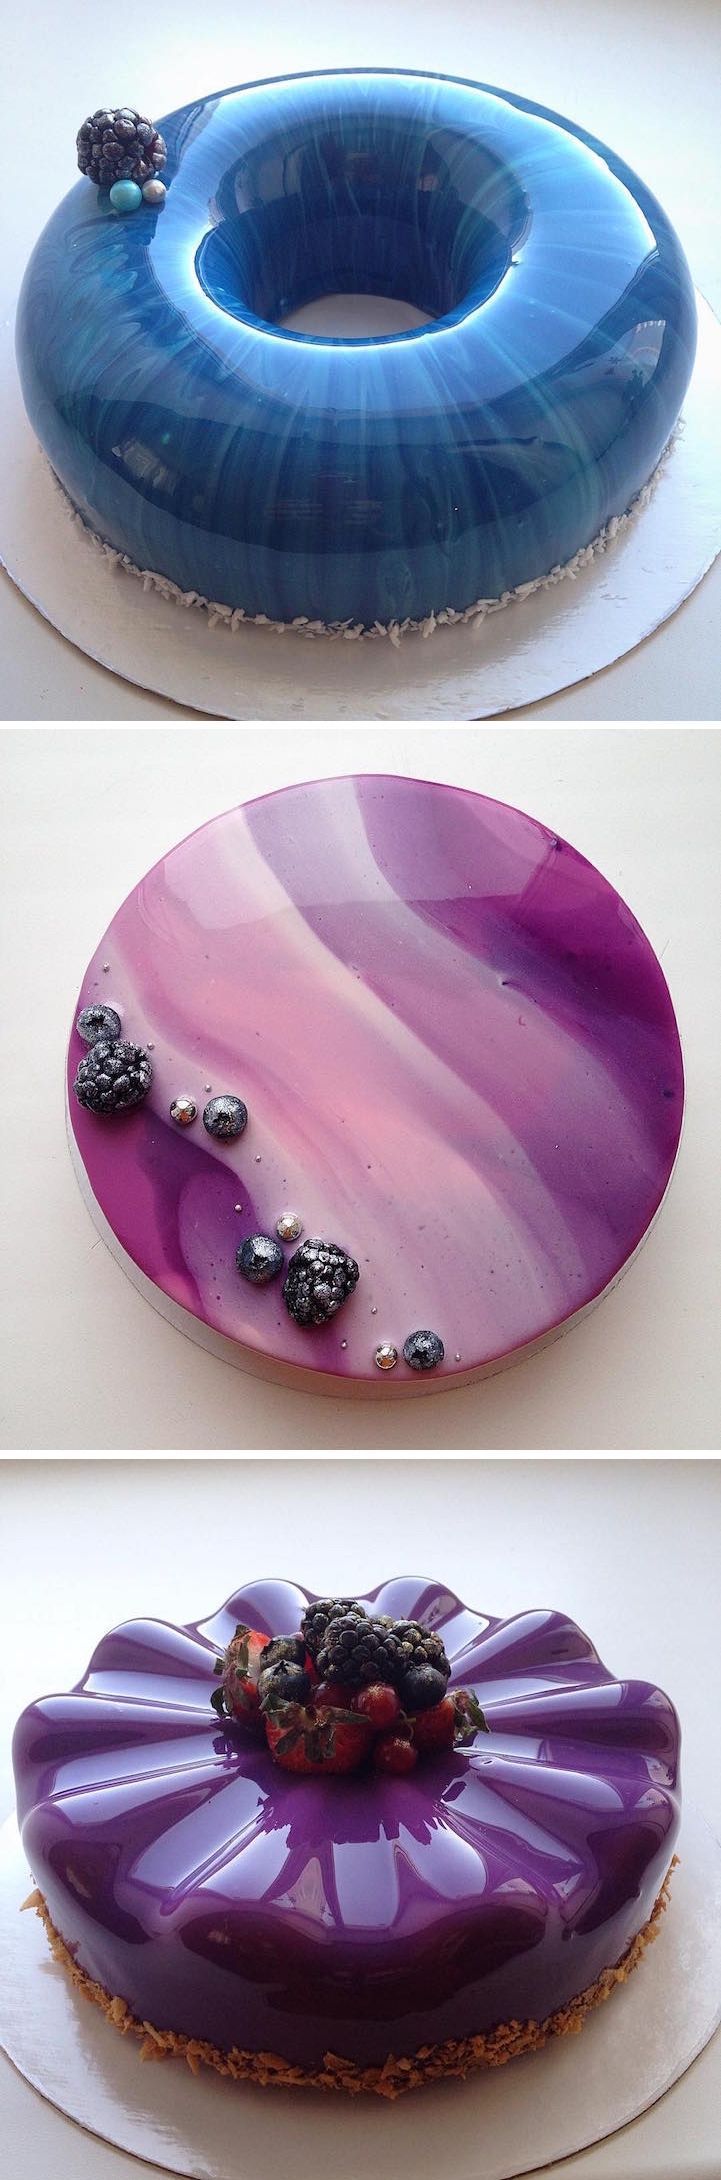 Olga Noskova Creates Cakes With A Special Glaze That Makes Confectionery Surfaces Appear Flawlessly Smooth And Glos Glossier Cake Mirror Glaze Cake Mirror Cake